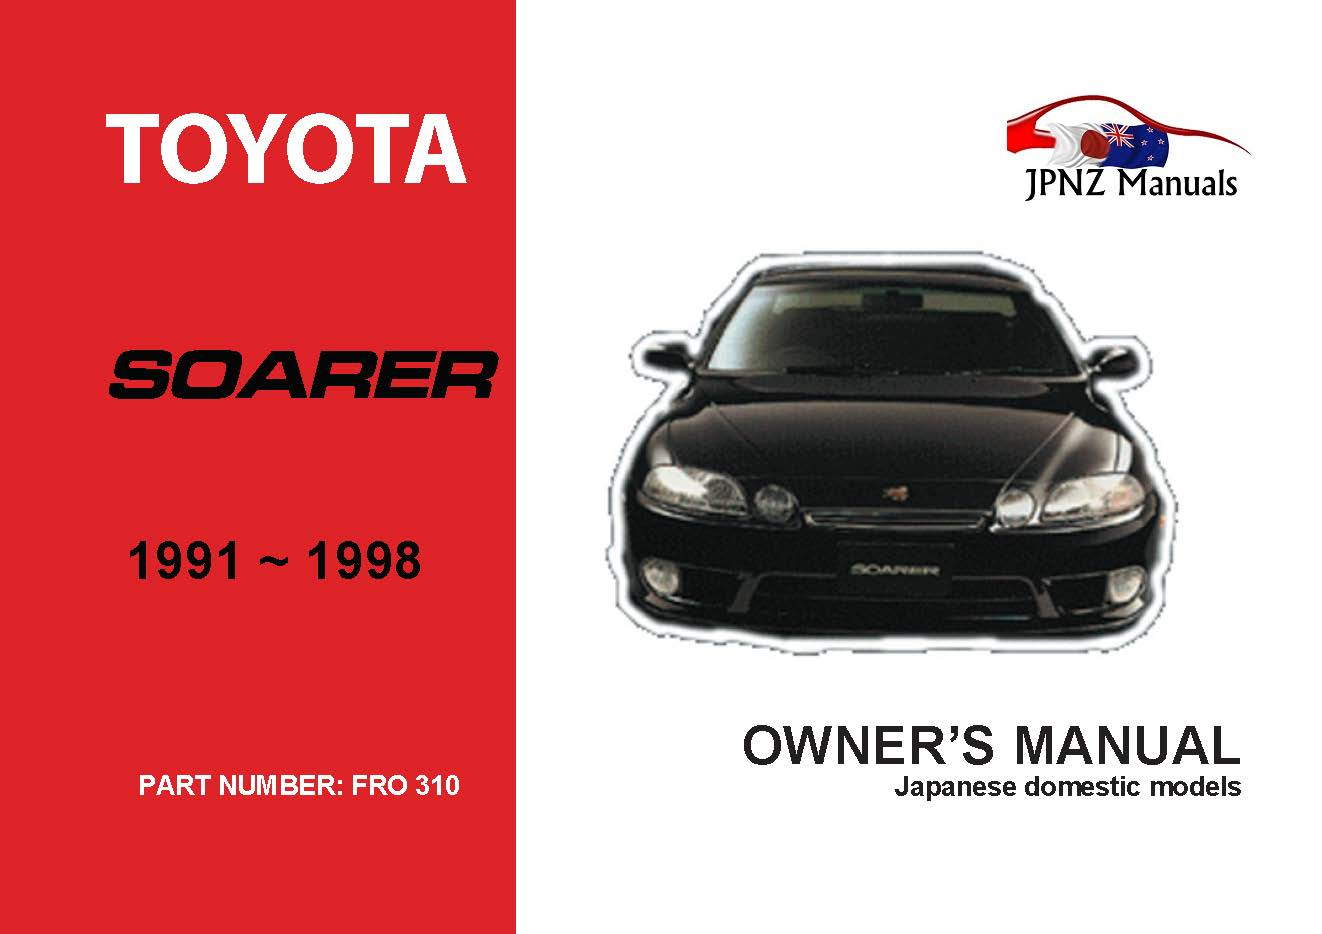 Toyota – Soarer owners manual | 1991 – 1998